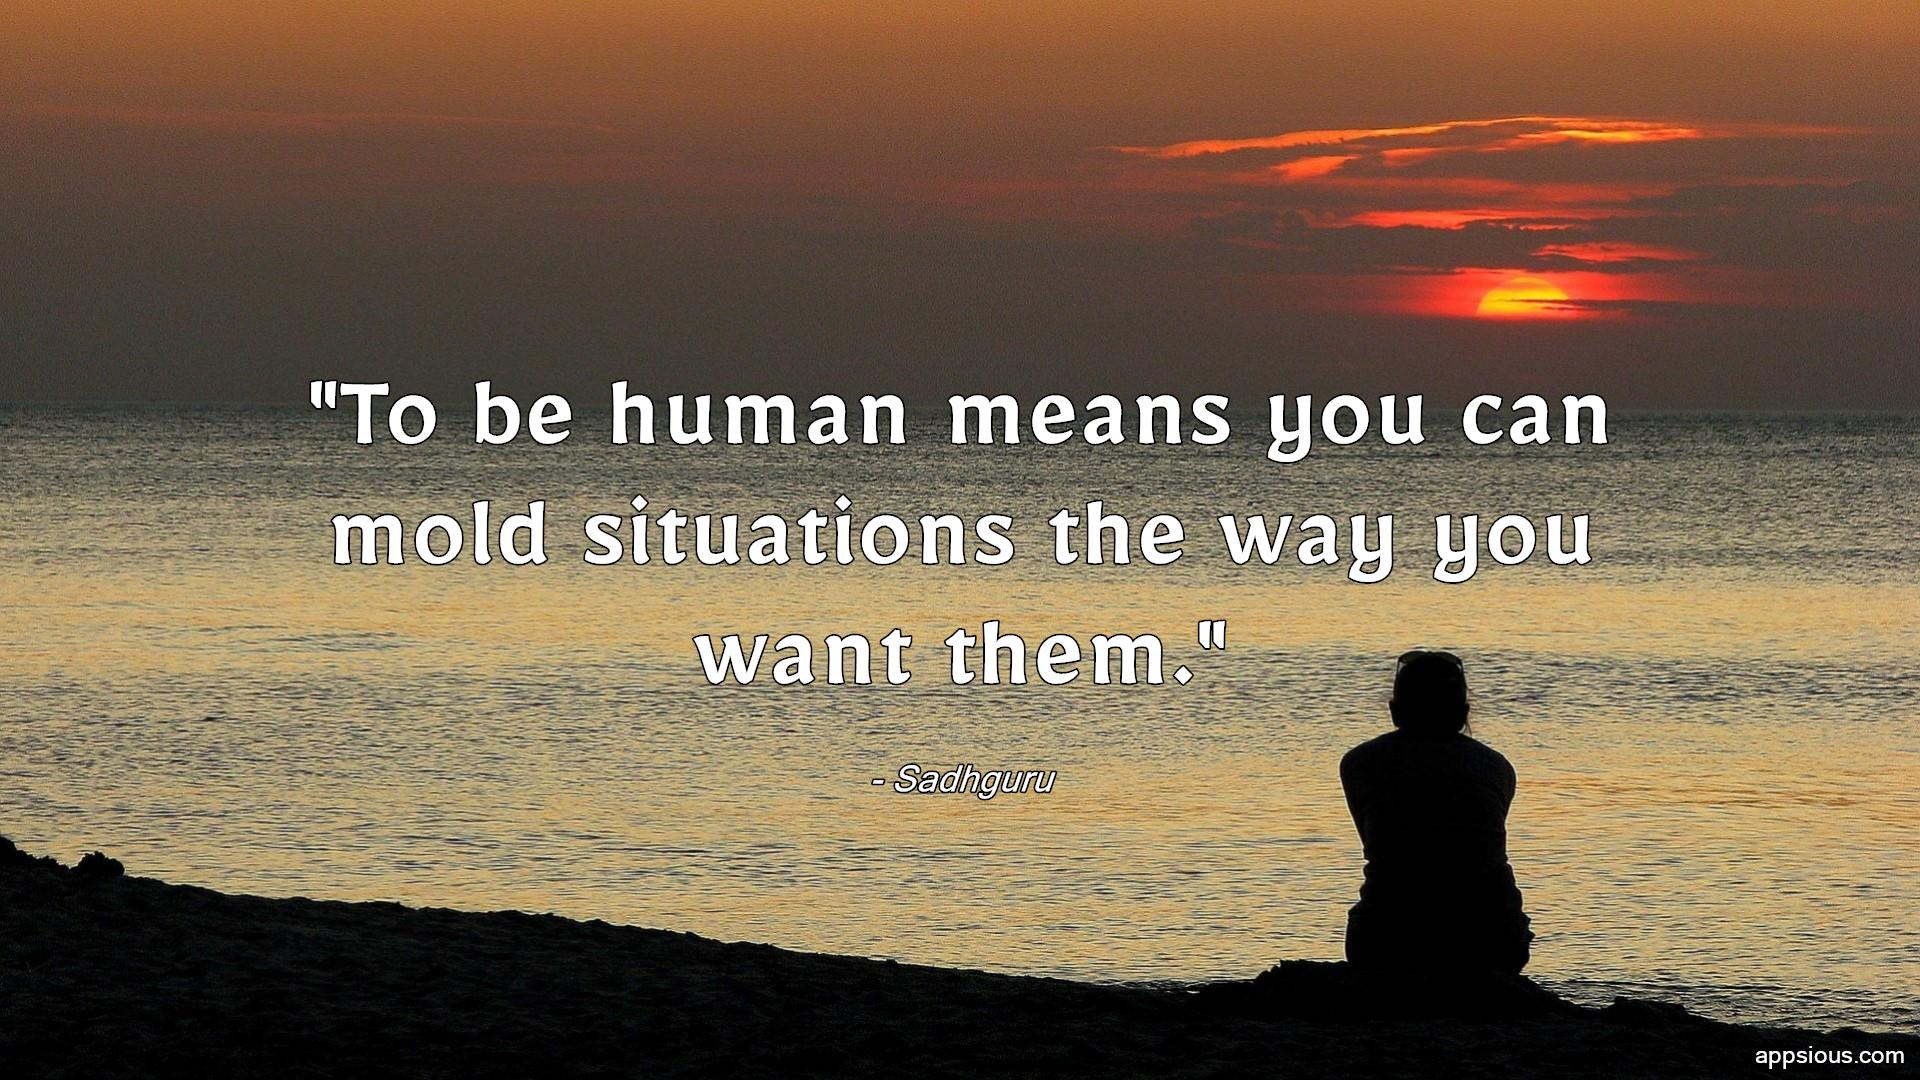 To be human means you can mold situations the way you want them.